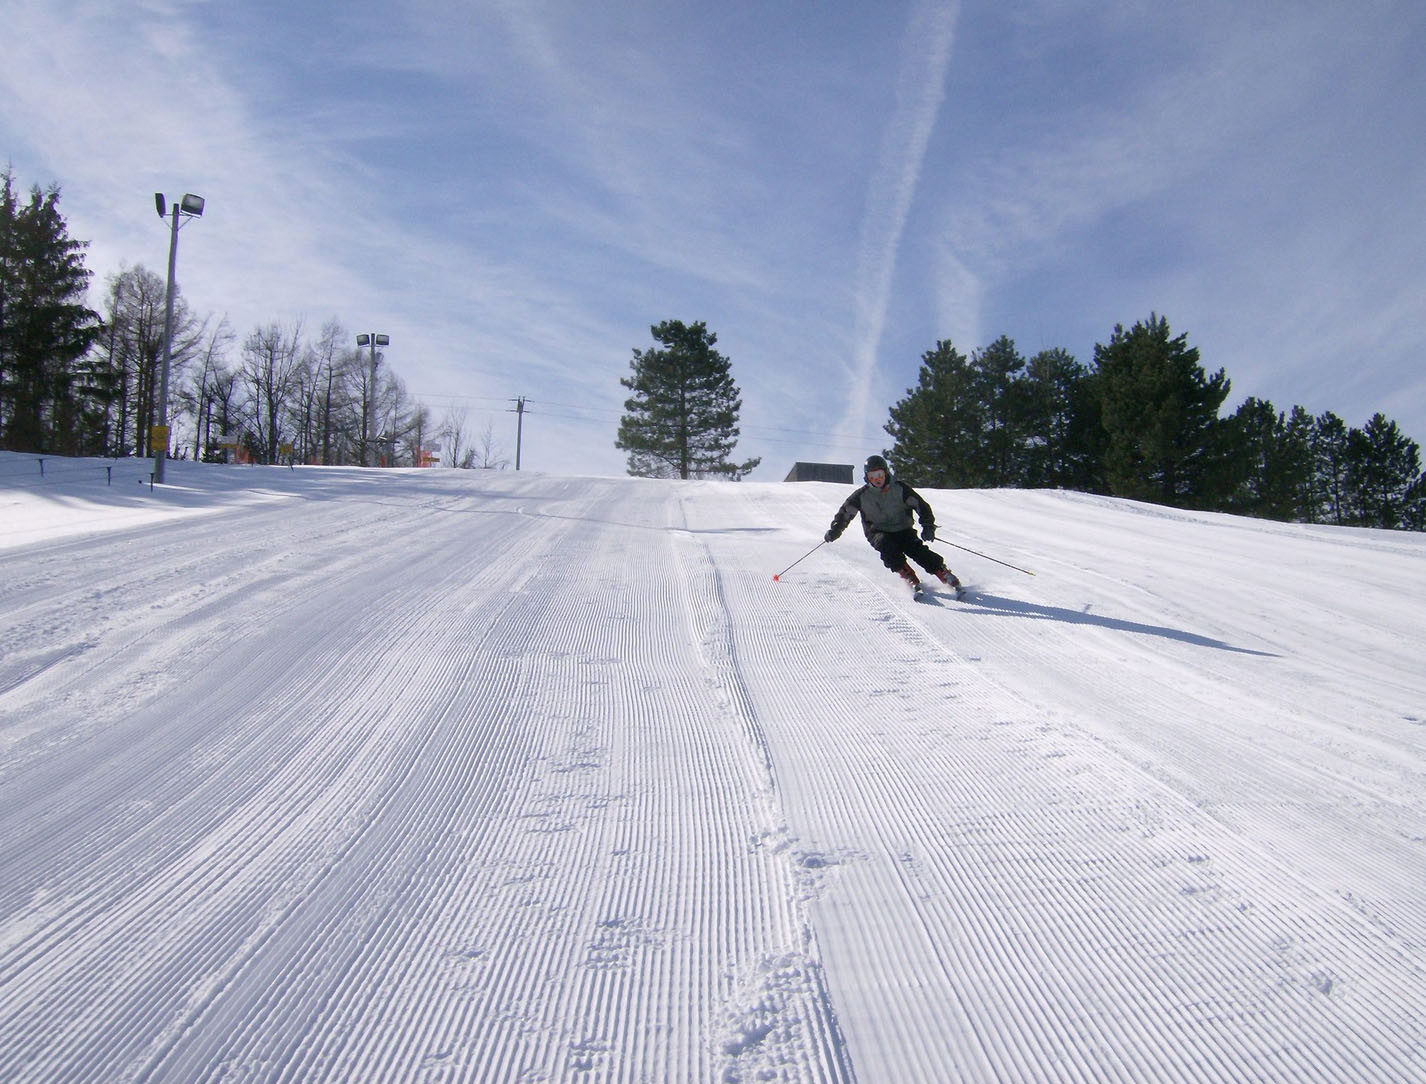 Brantling Ski Slopes